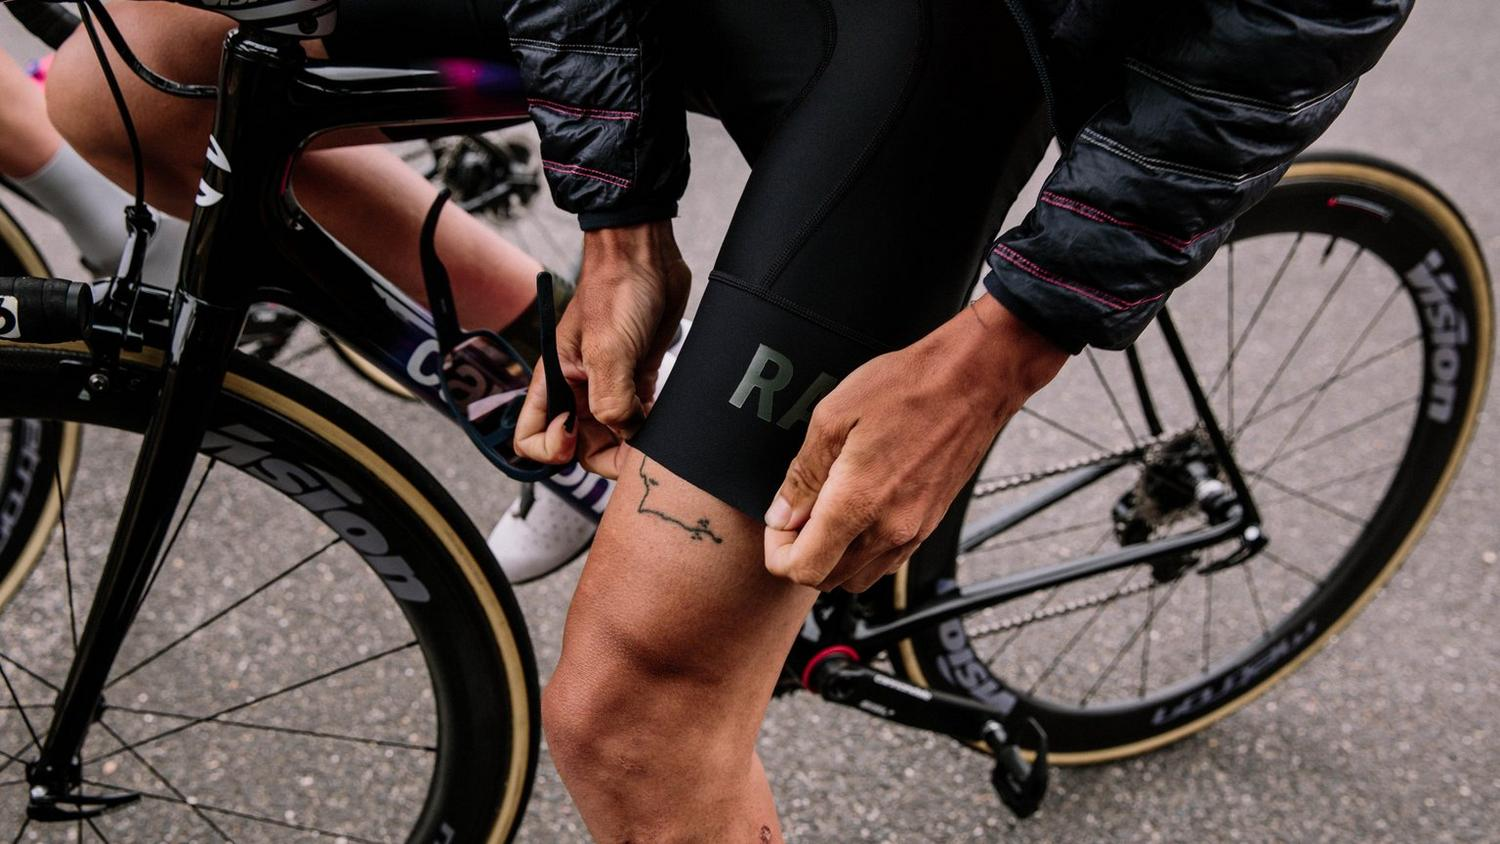 Men's Bib Shorts Guide 2020